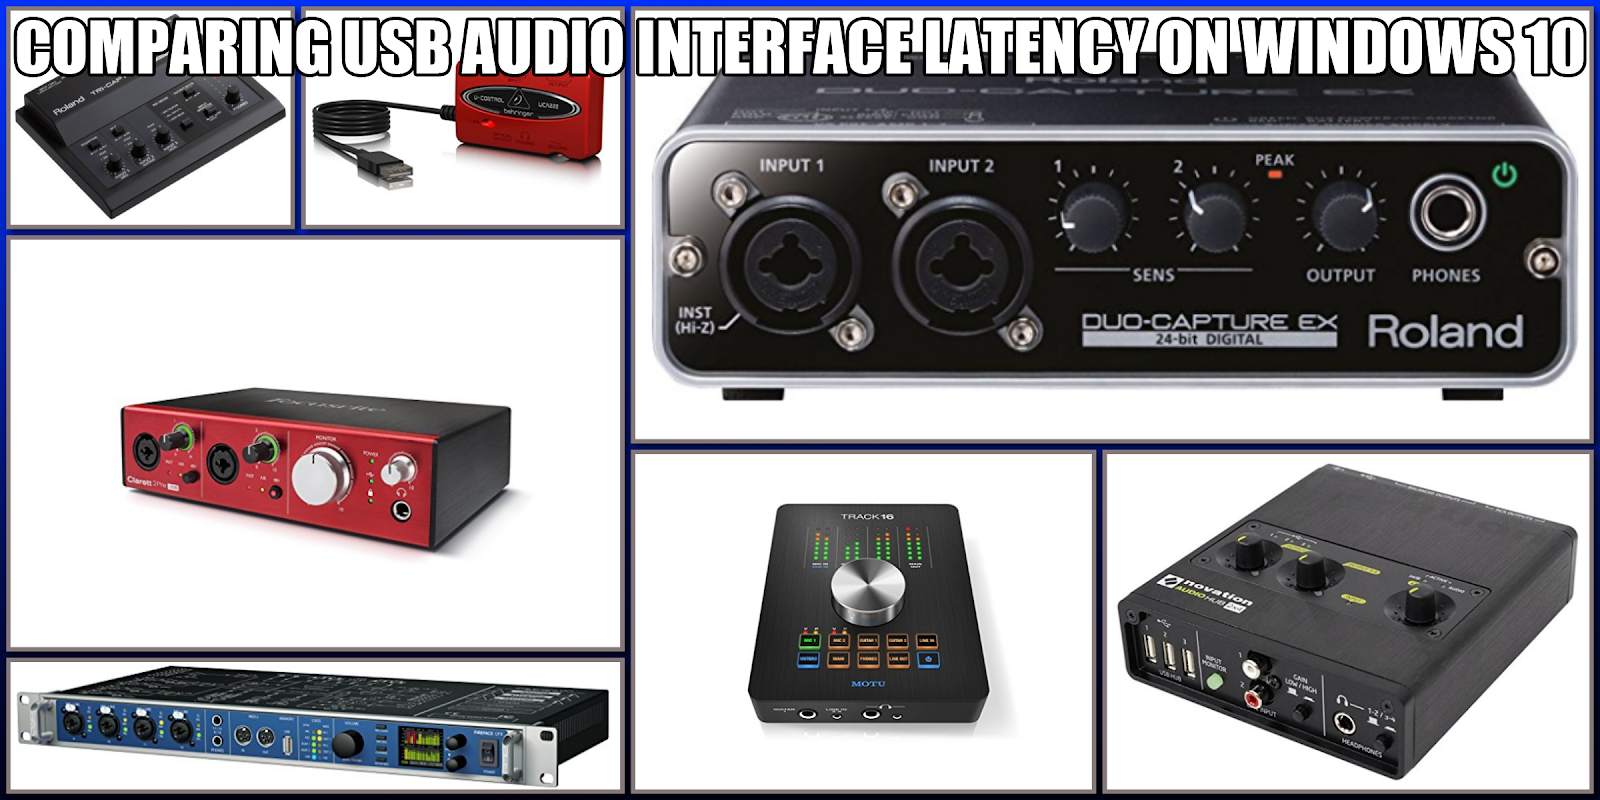 Ultimate Outsider: Comparing USB Audio Interface Latency on Windows 10